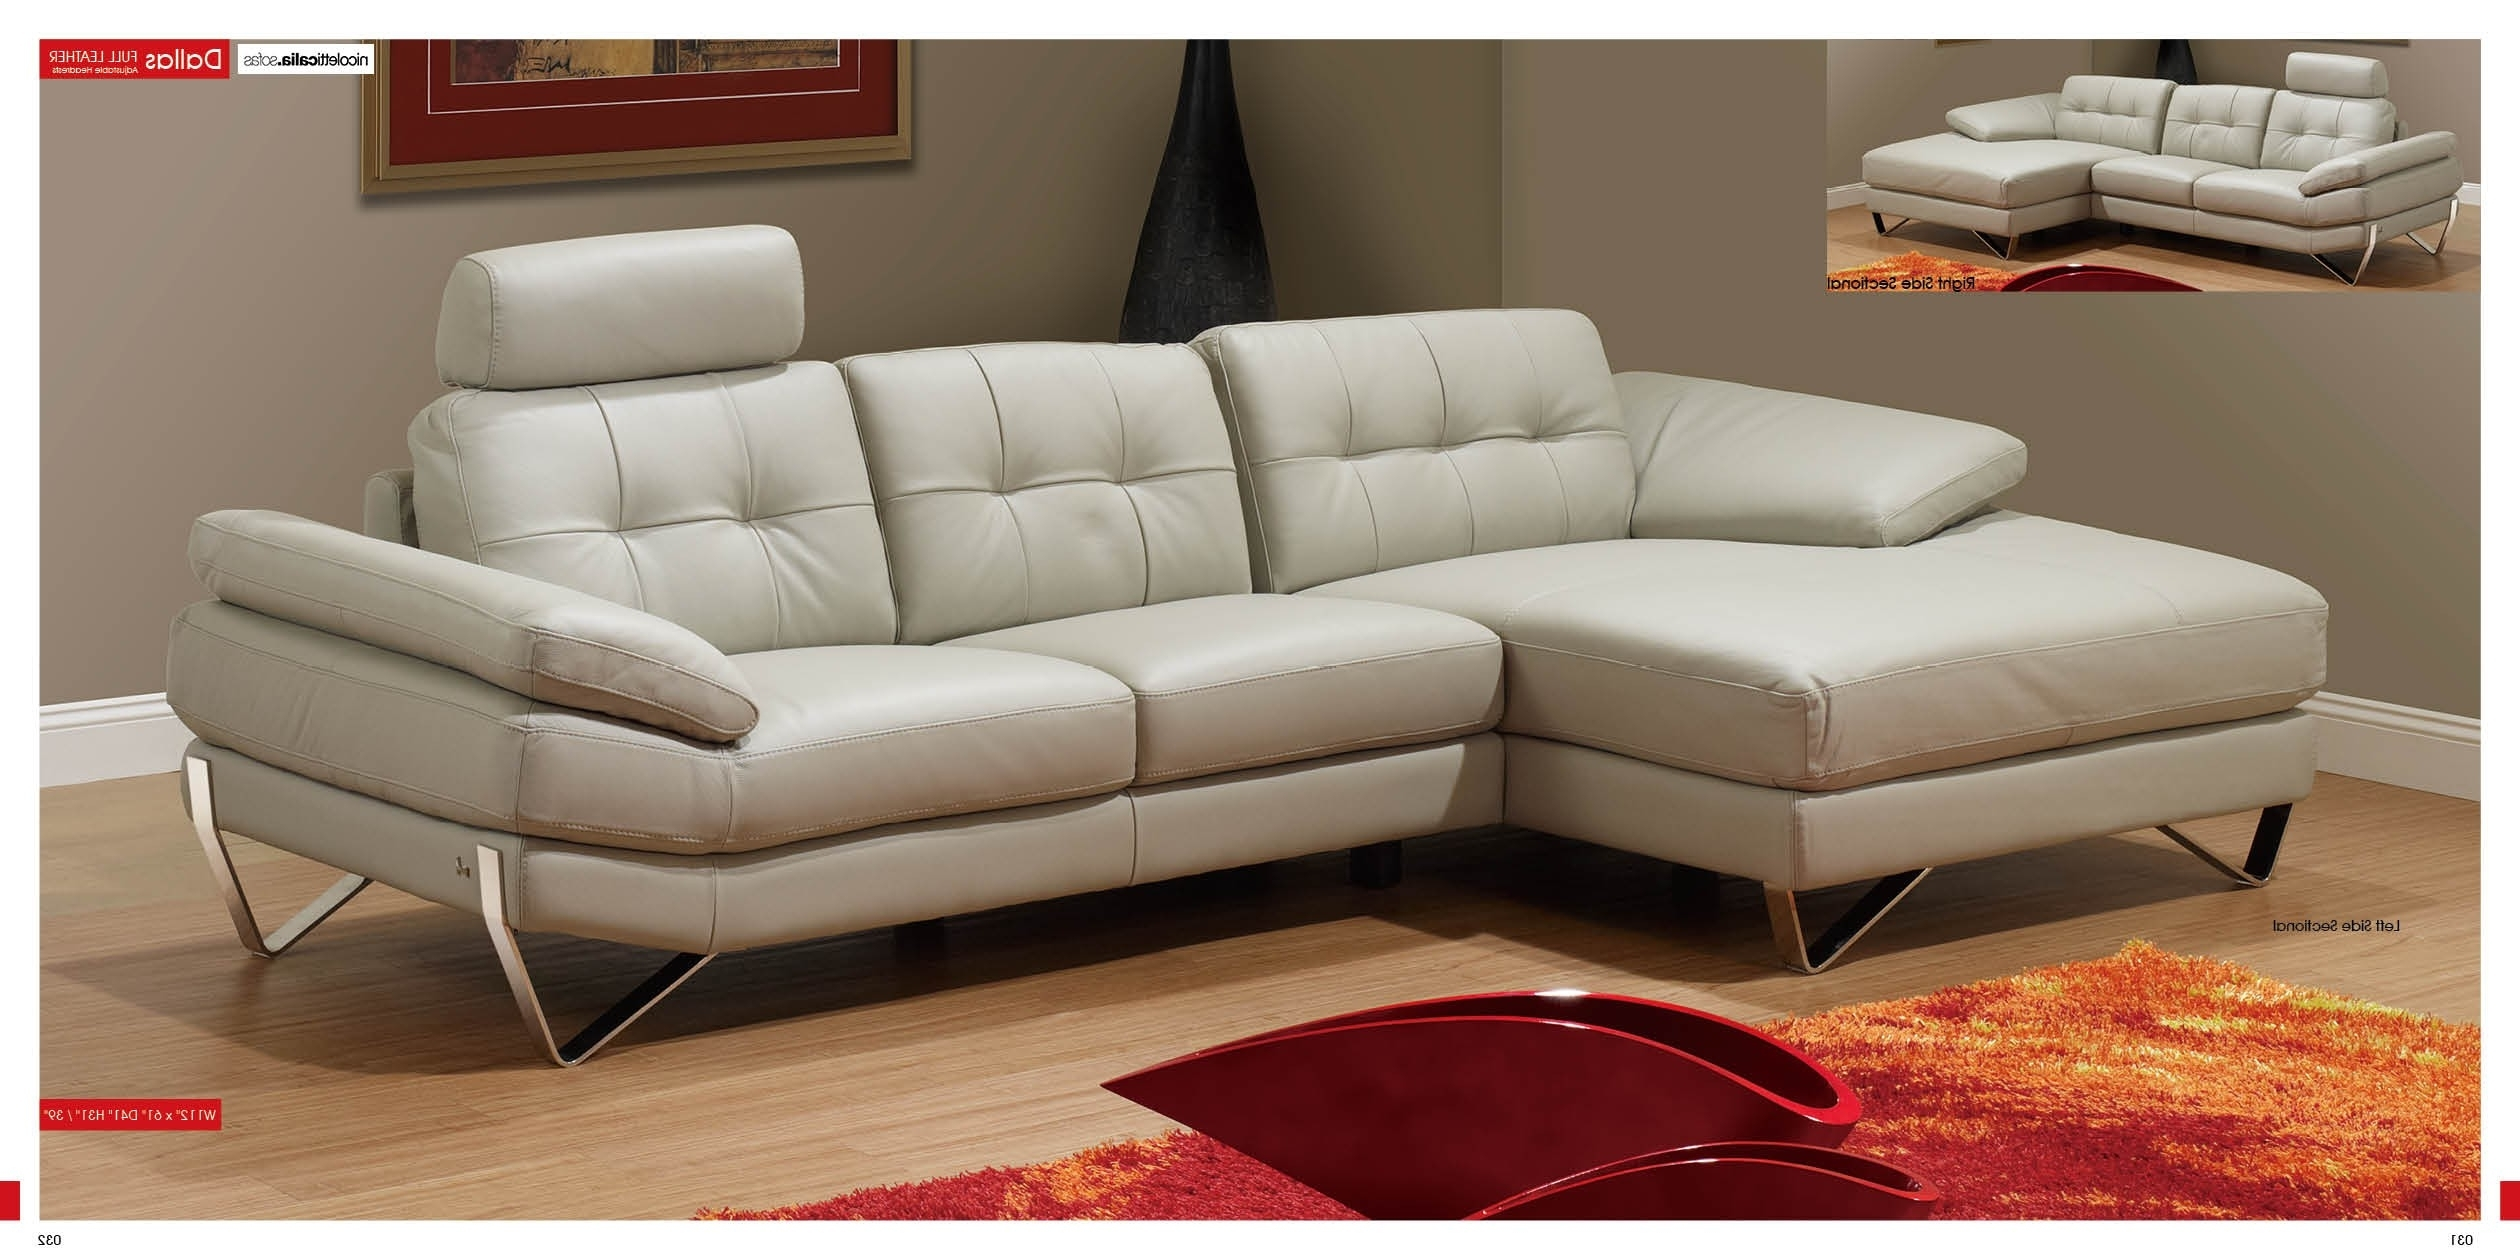 Furniture Sofa Glamorous Interior Designhavertys Regarding Fashionable Sectional Sofas In Savannah Ga